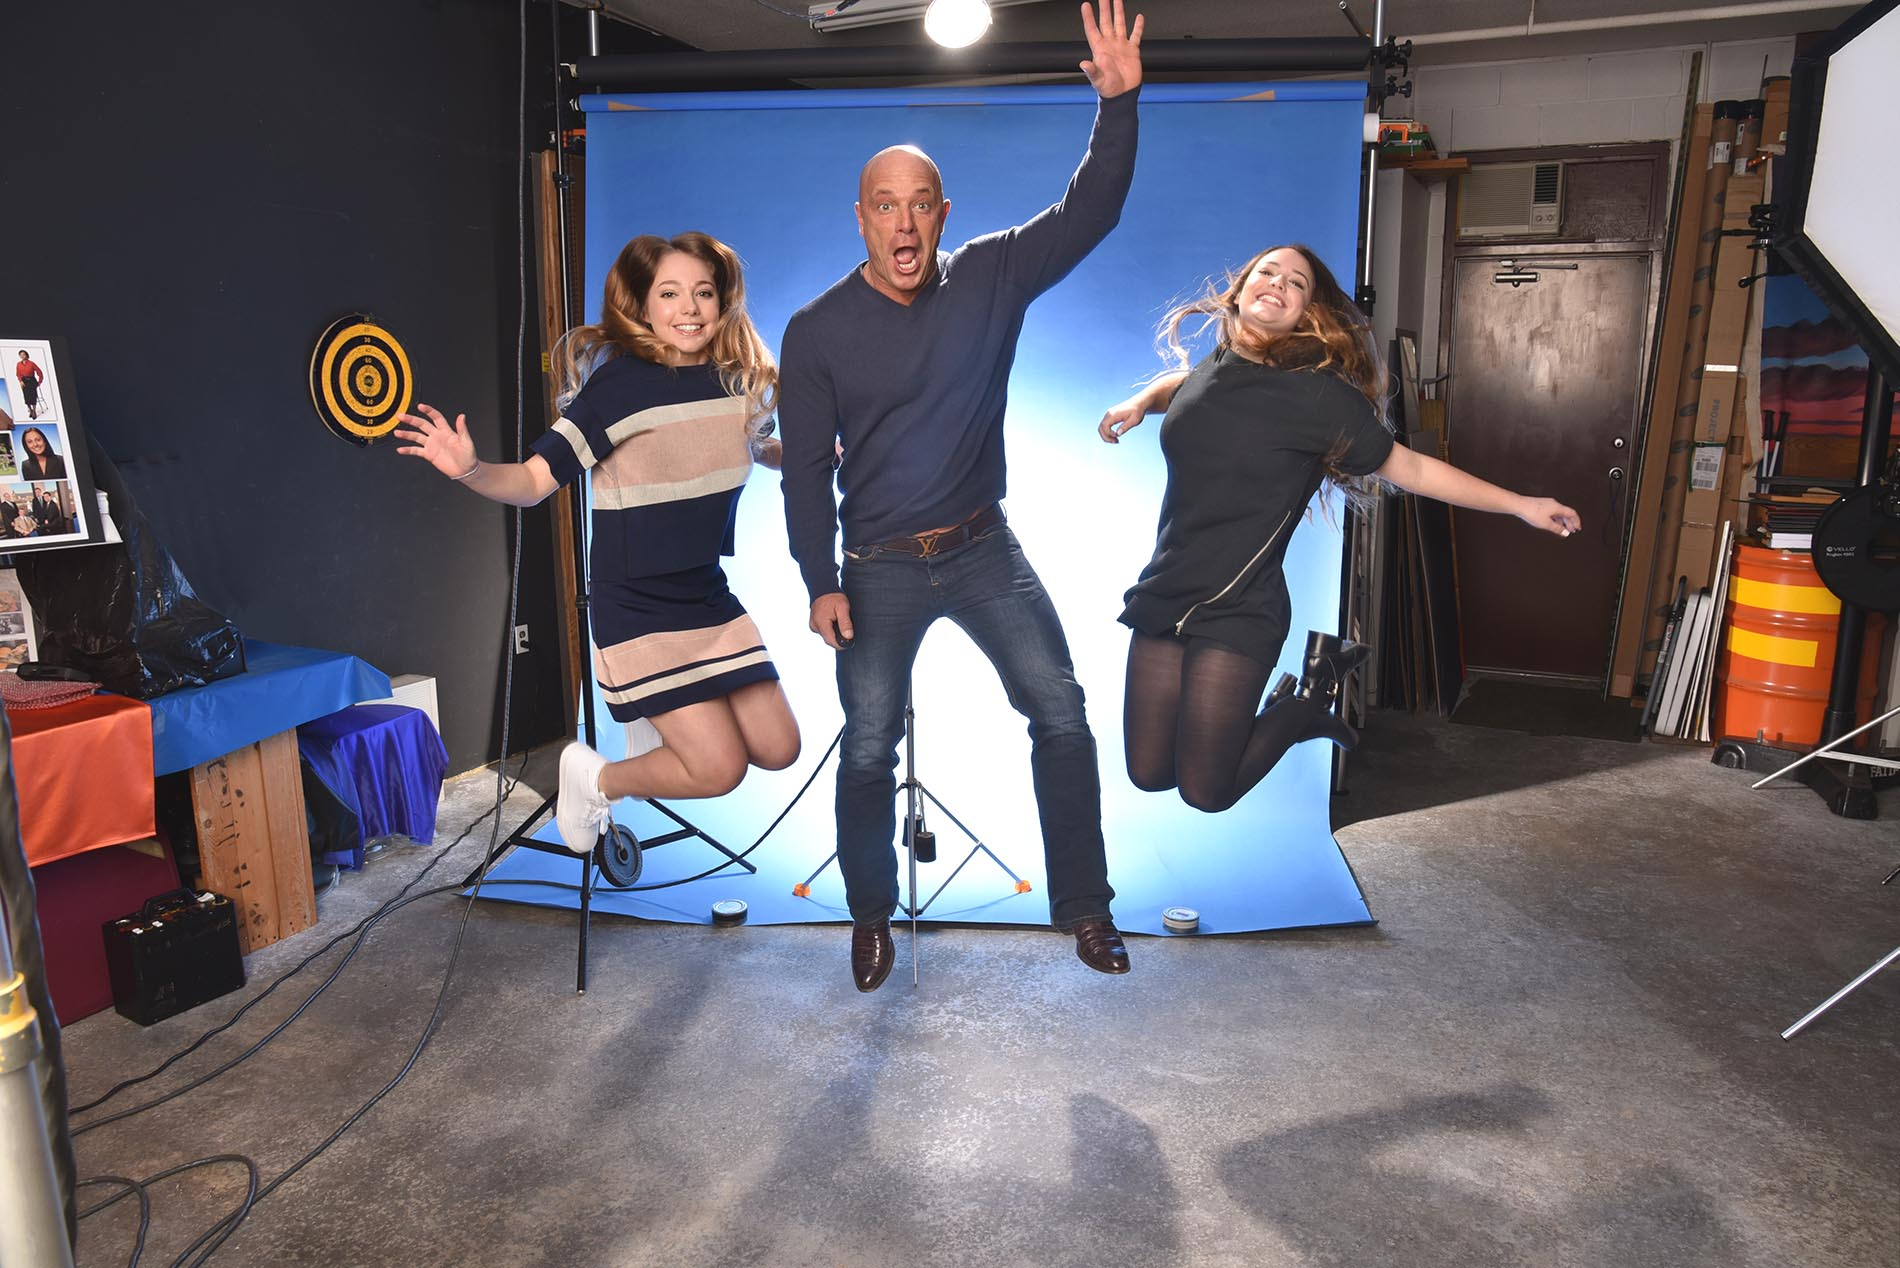 Behind the scenes portrait session in studio with Dylan & daughters